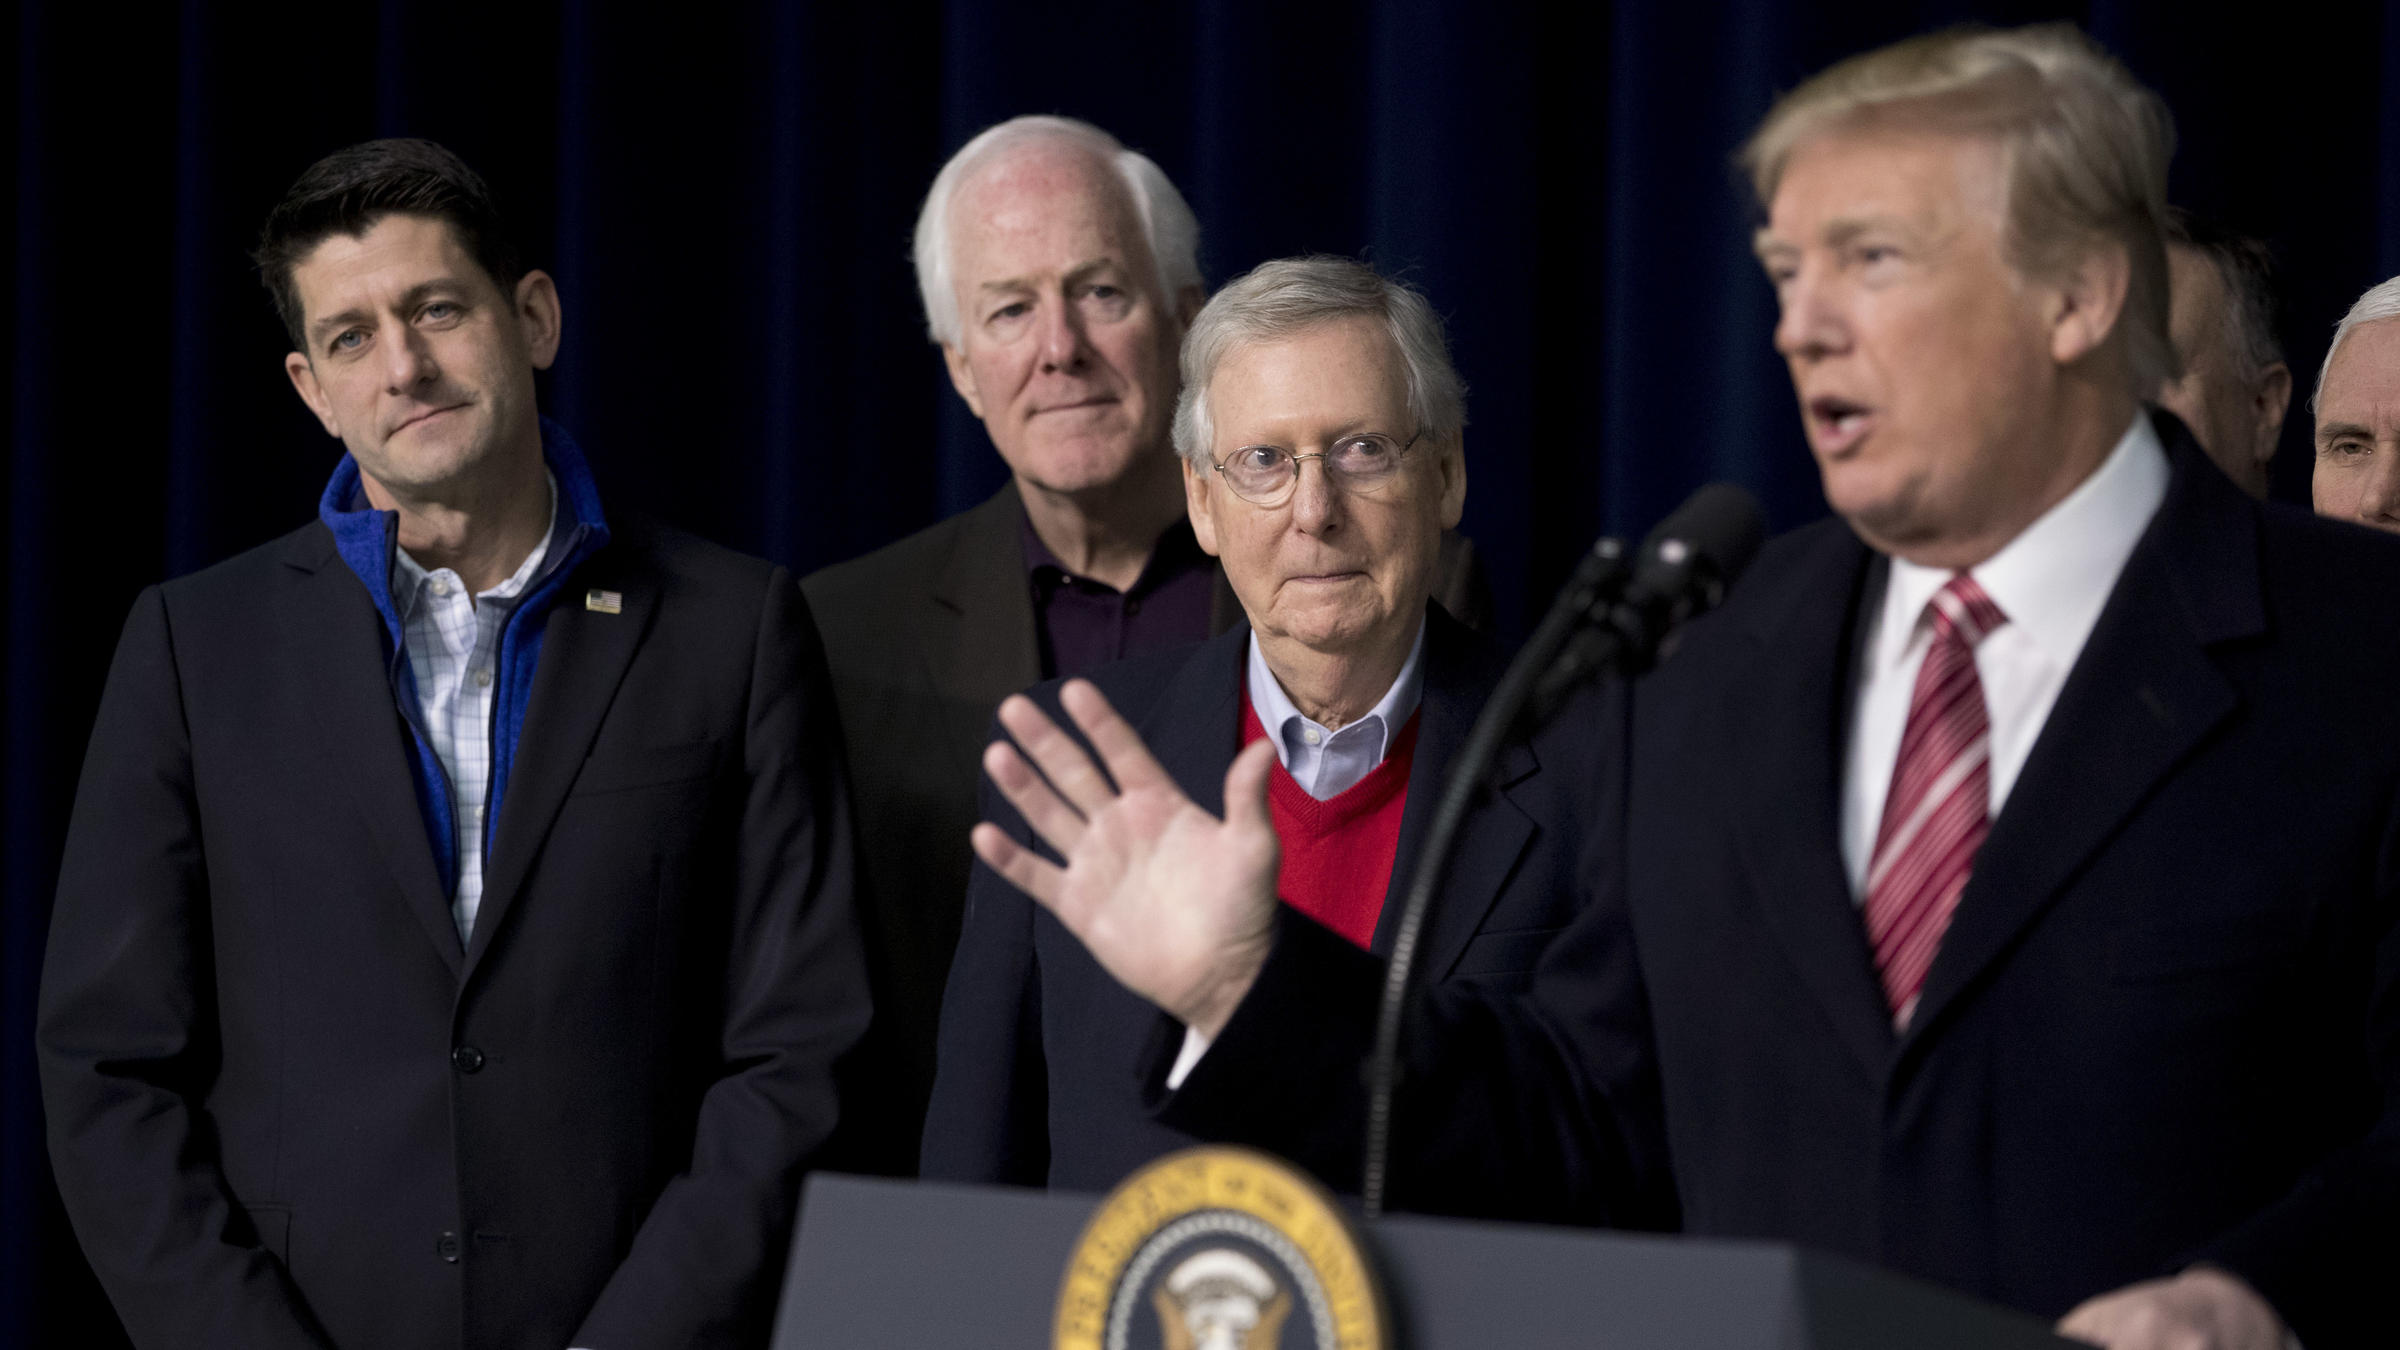 President Trump with House Speaker Paul Ryan of Wis. Senate Majority Whip John Cornyn R-Texas. and Senate Majority Leader Mitch Mc Connell of Ky. speaks to reporters after a retreat where GOP leaders made plans for a 2018 agenda